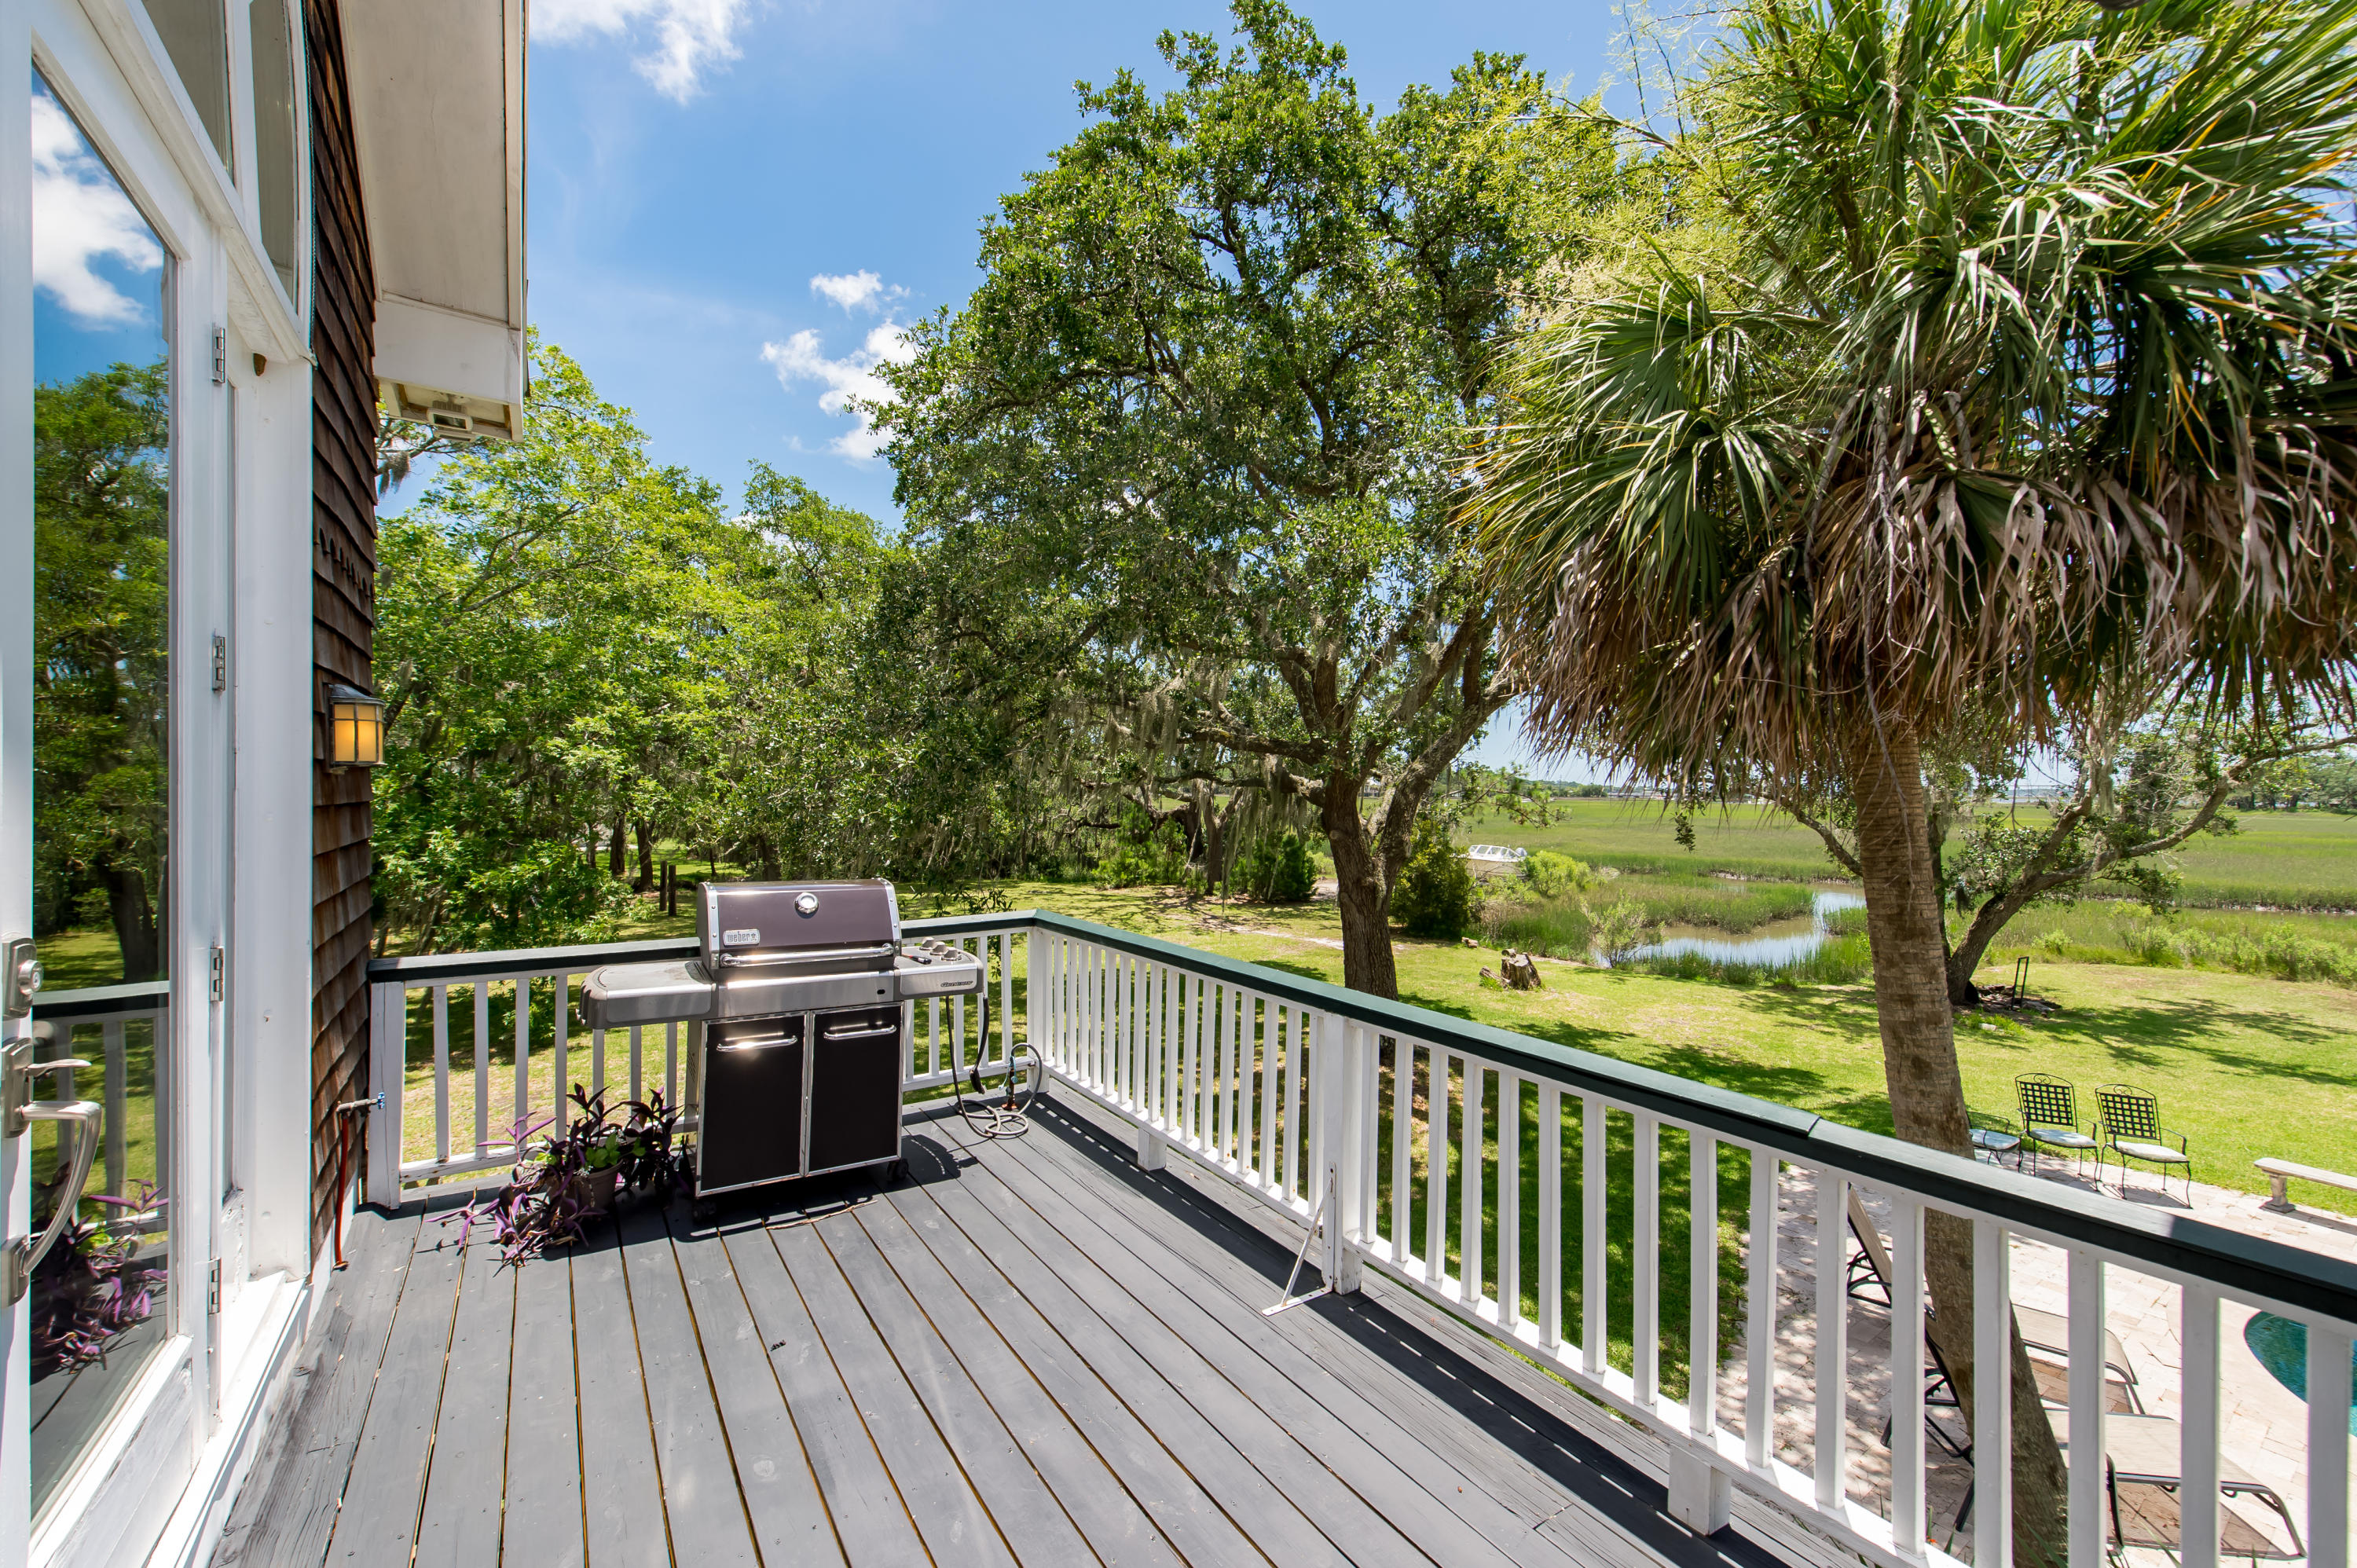 Wappoo Shores Homes For Sale - 1625 Mcclain, Charleston, SC - 46